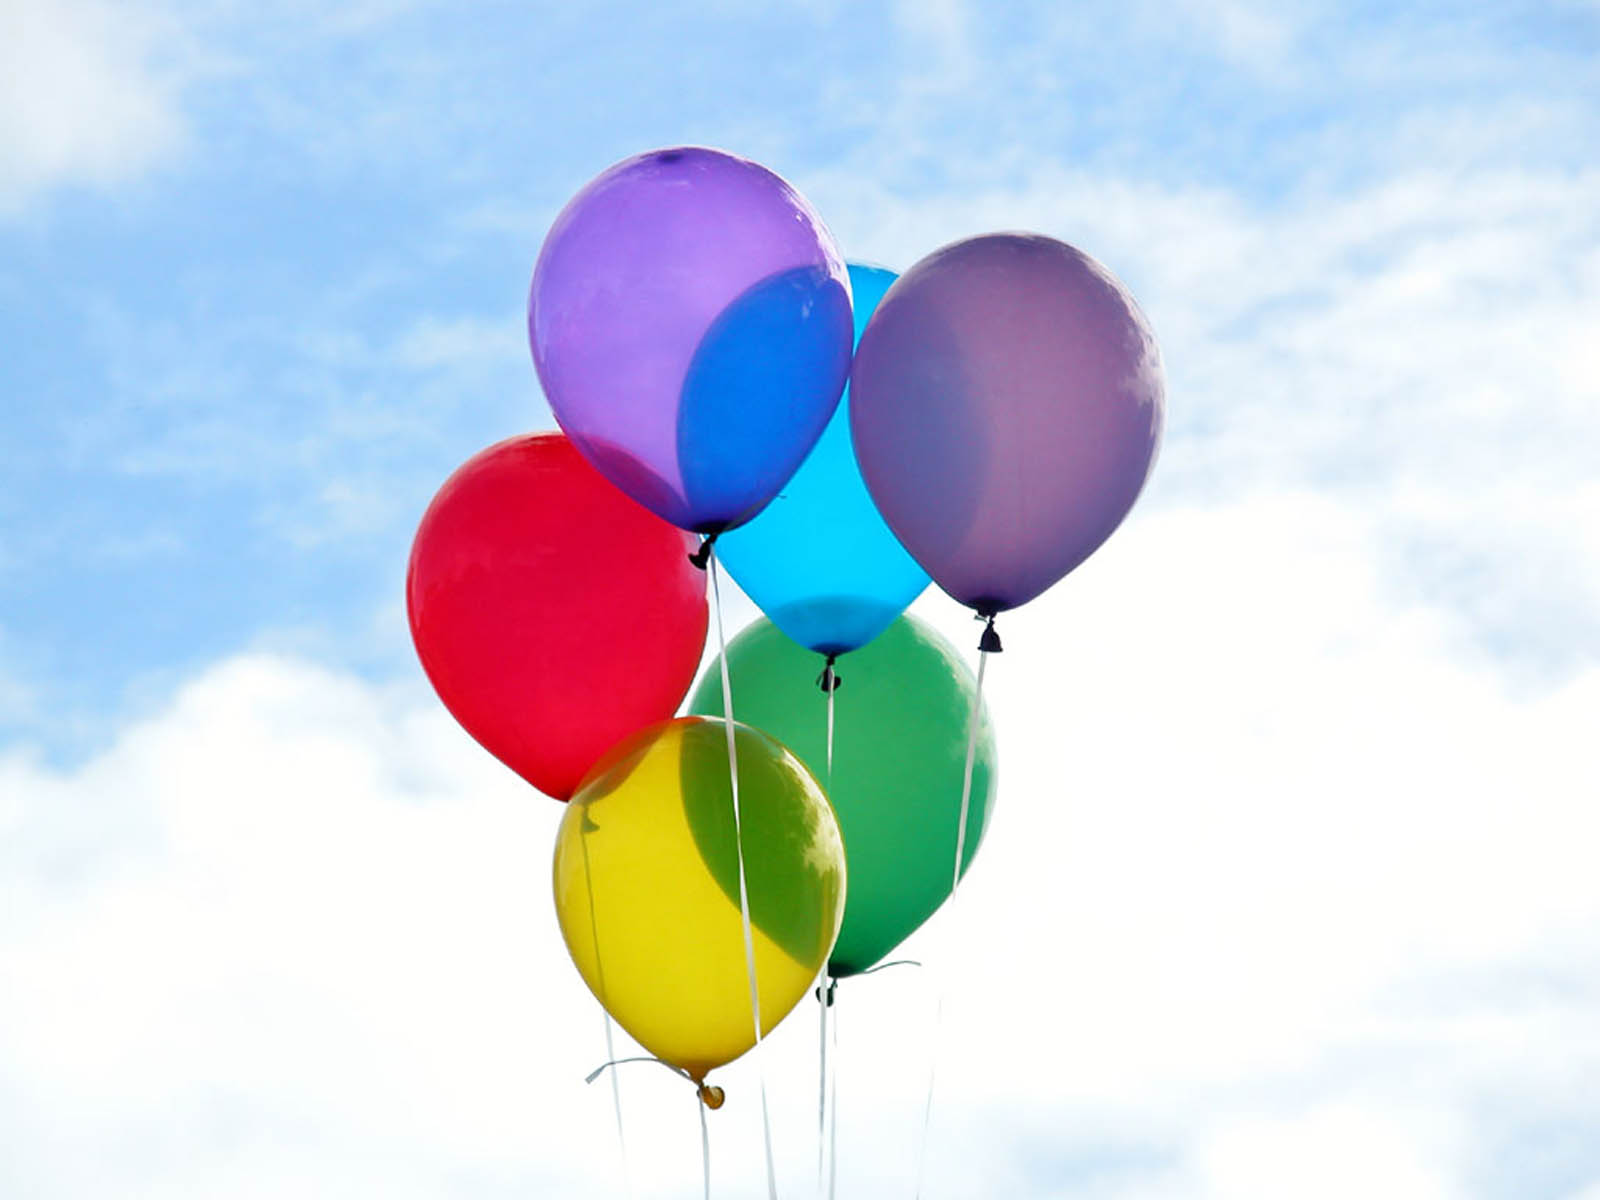 balloons background wallpaper - photo #1